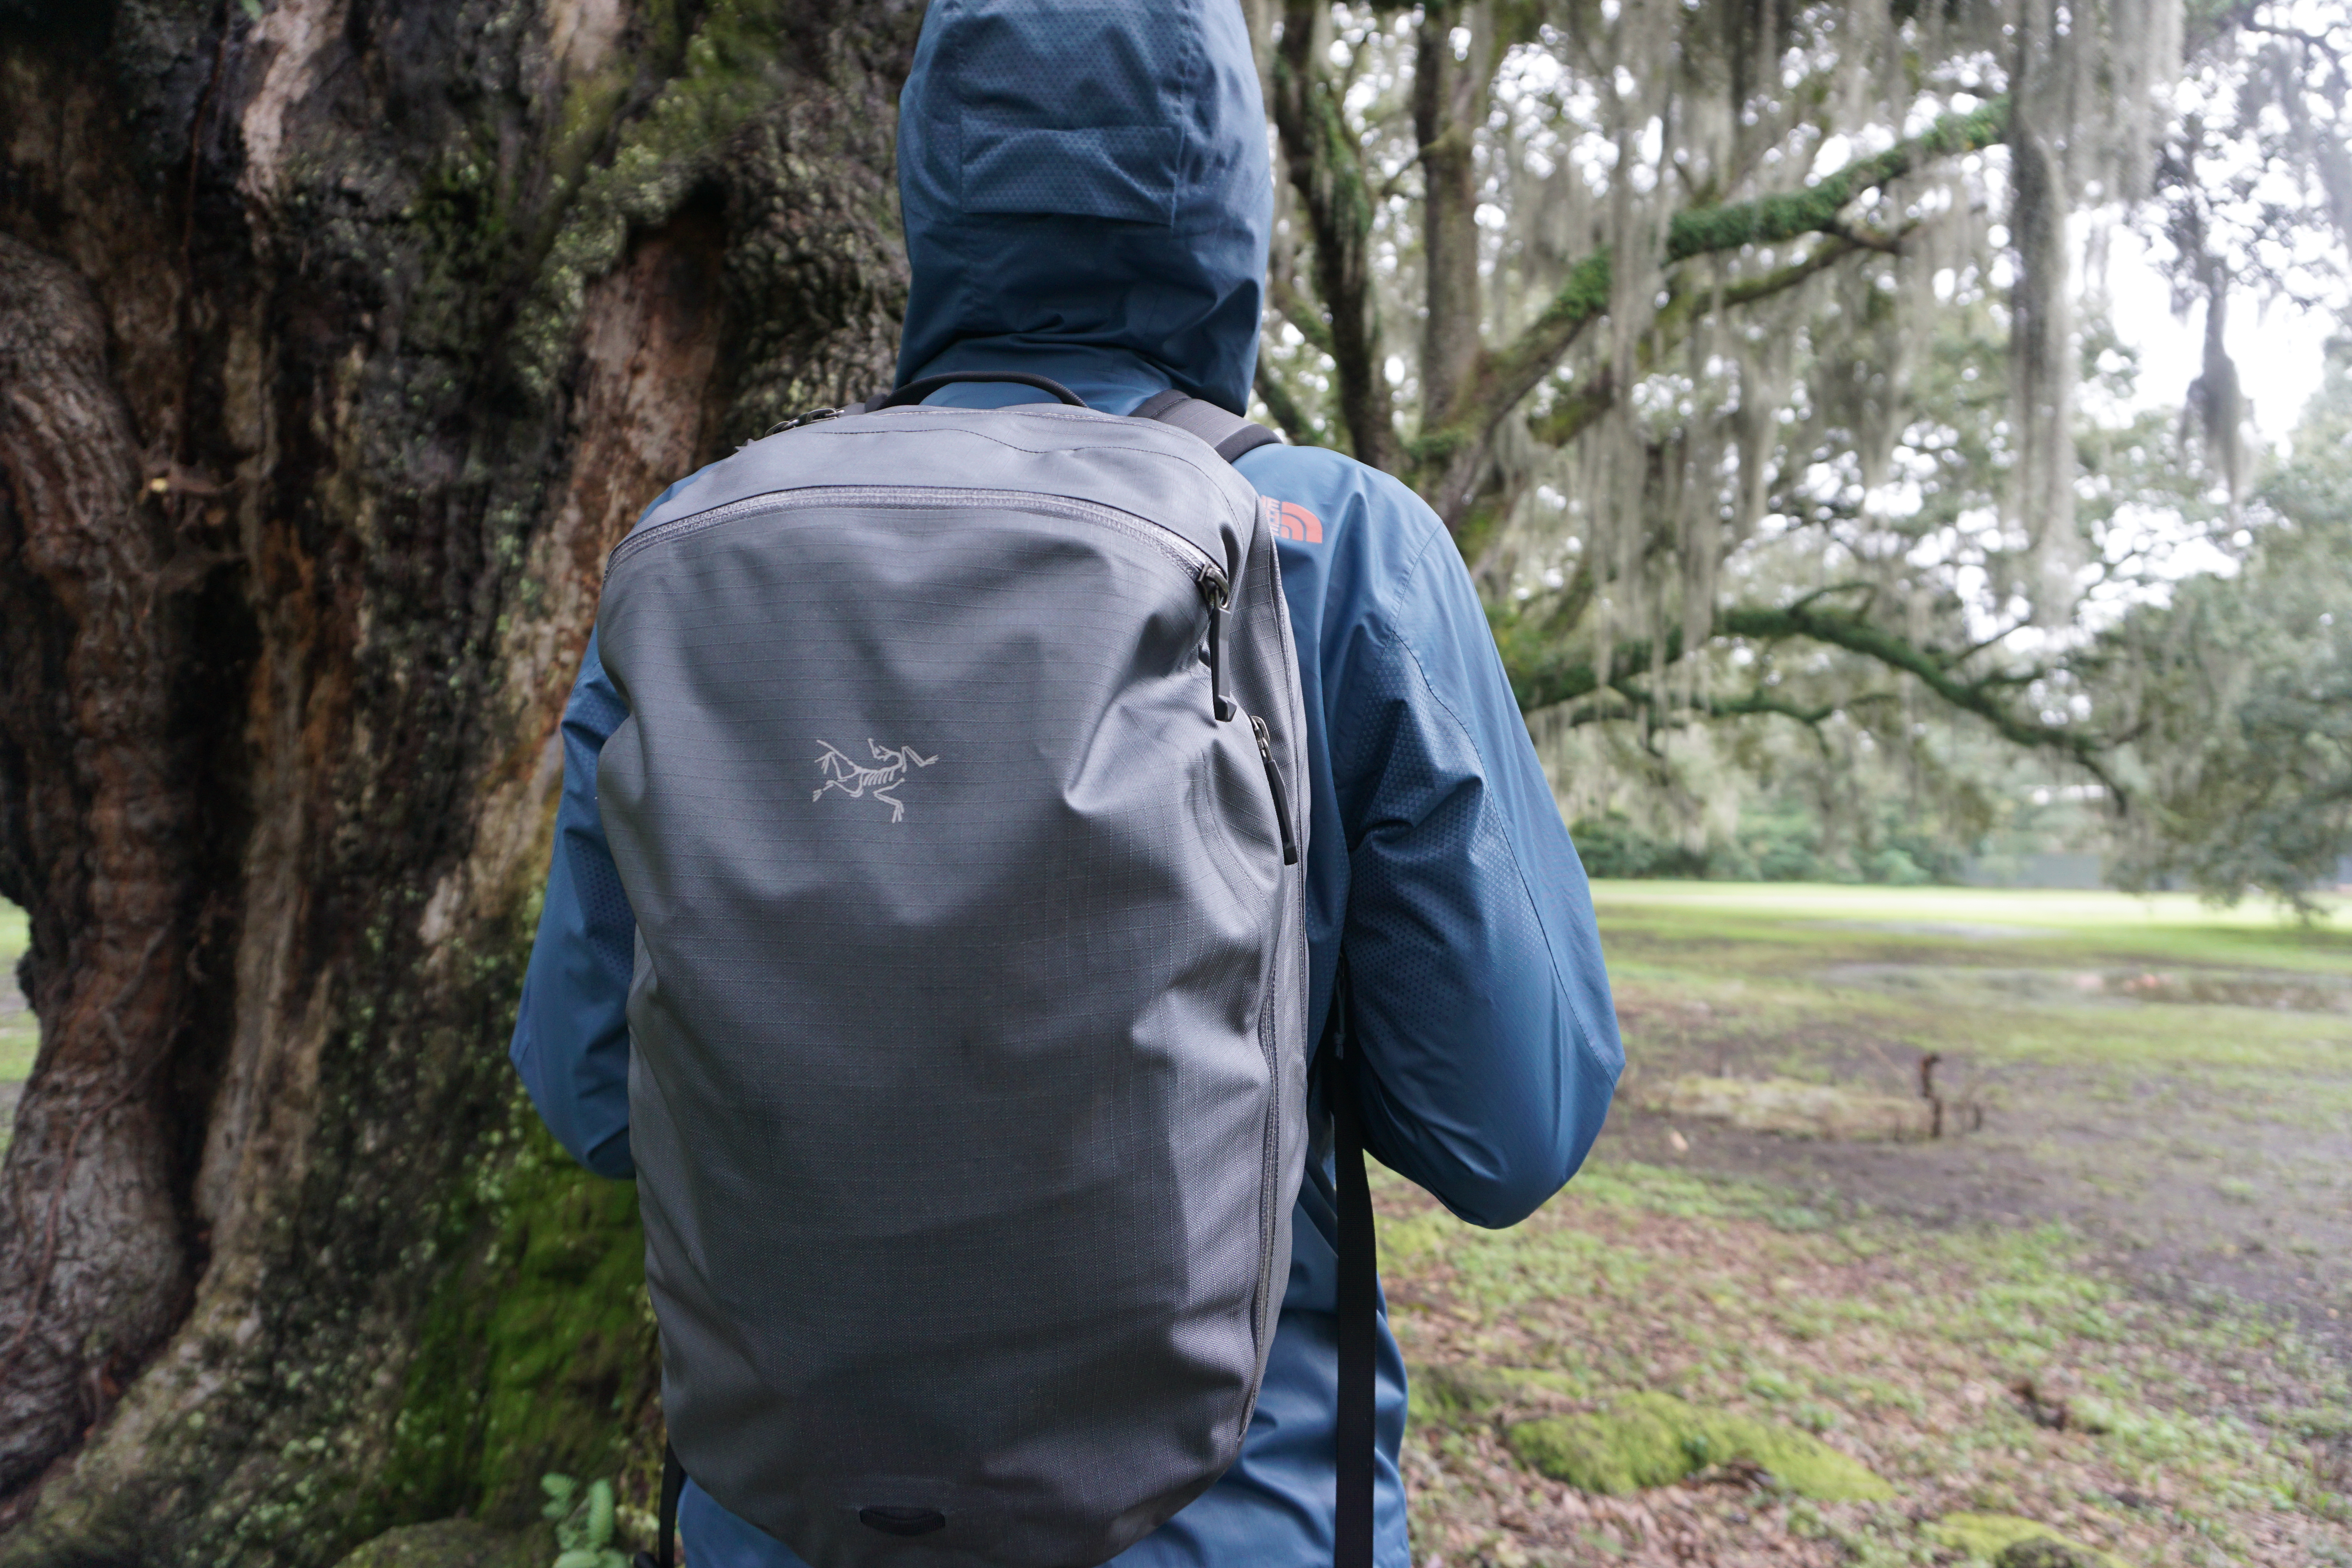 Arcteryx Granville zip 16 backpack review on body dry bag